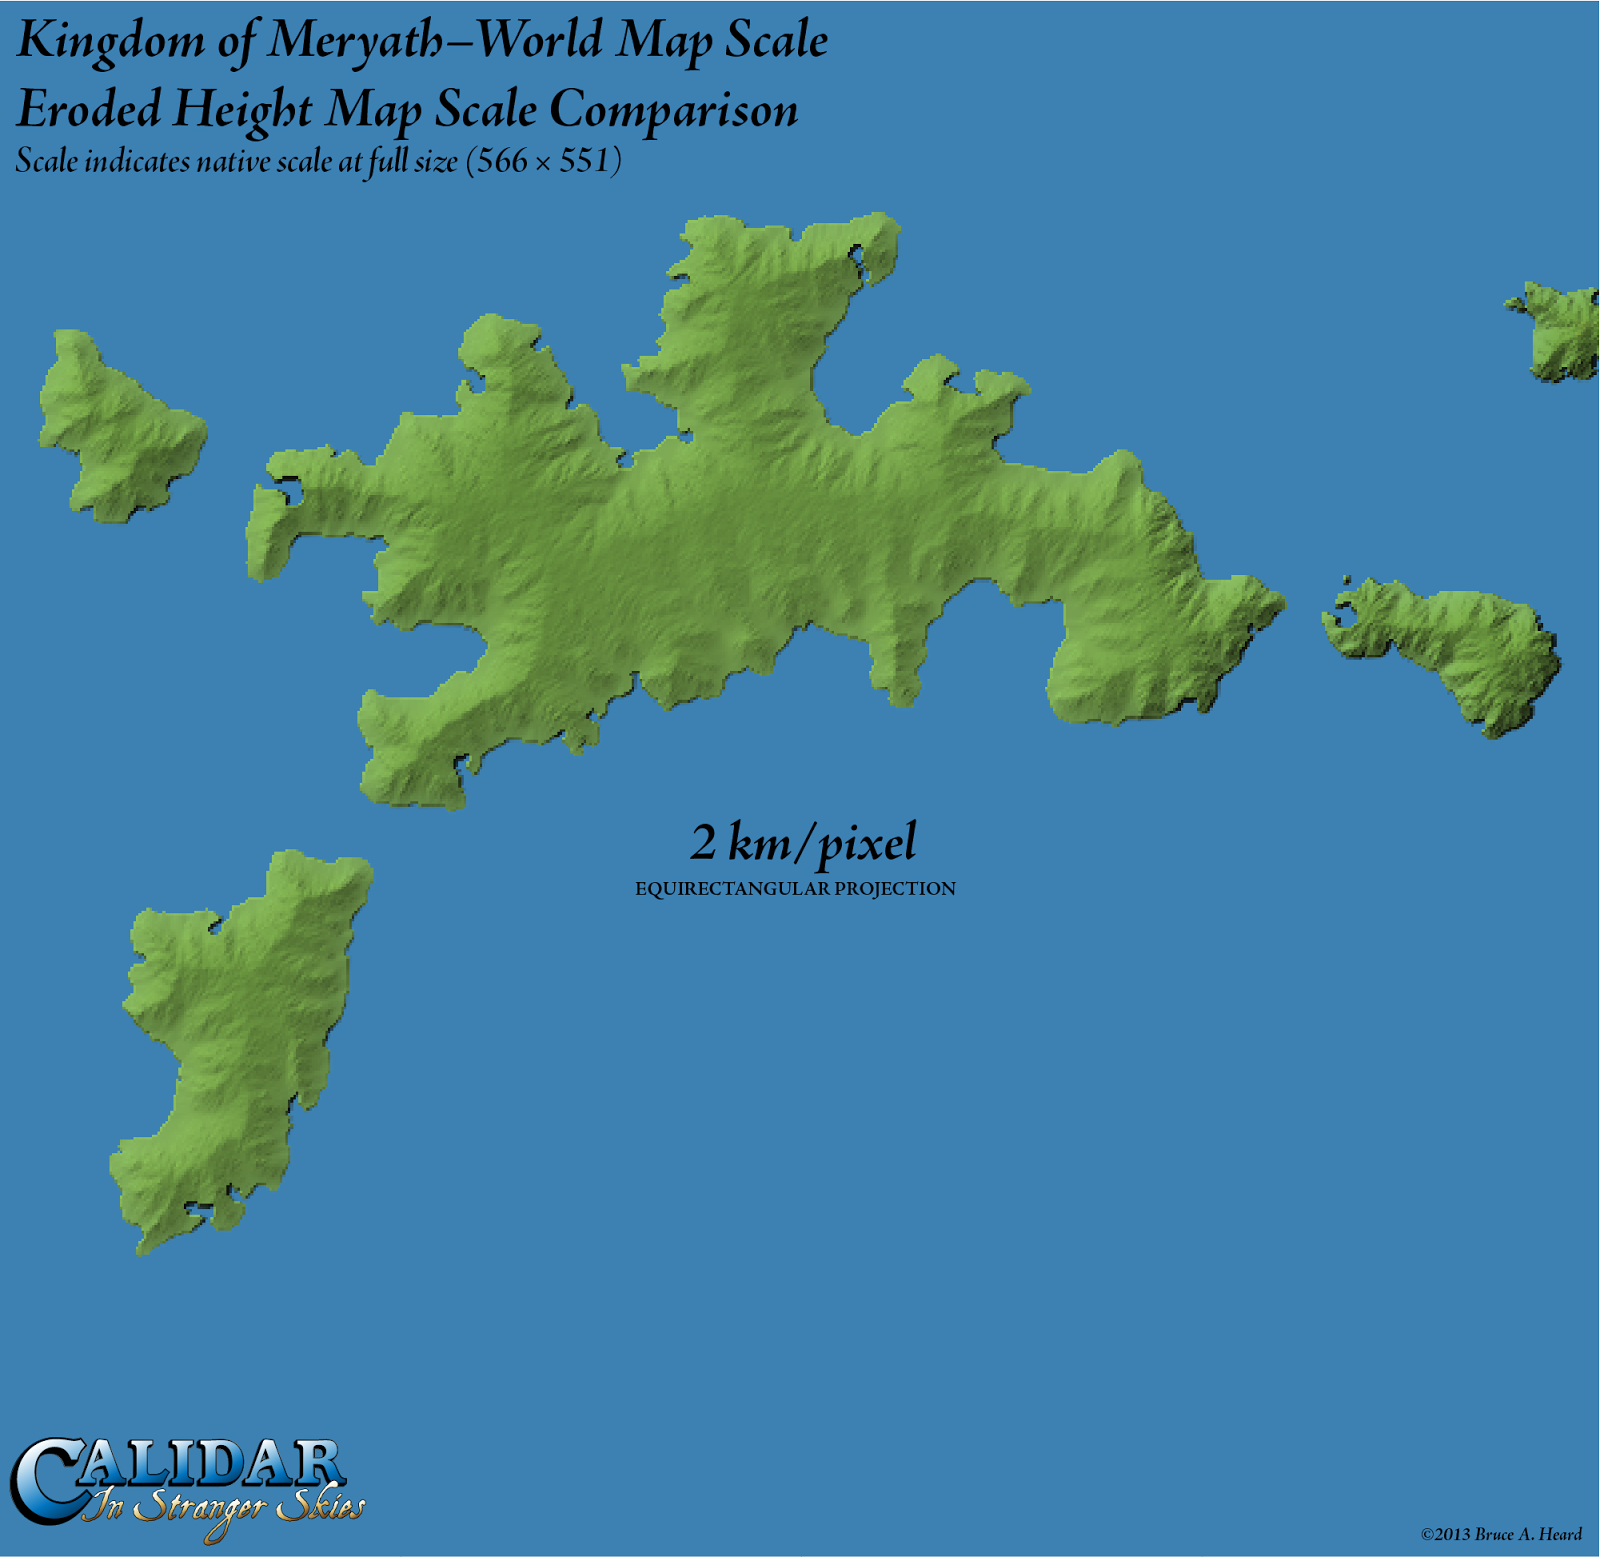 World map with scale in km